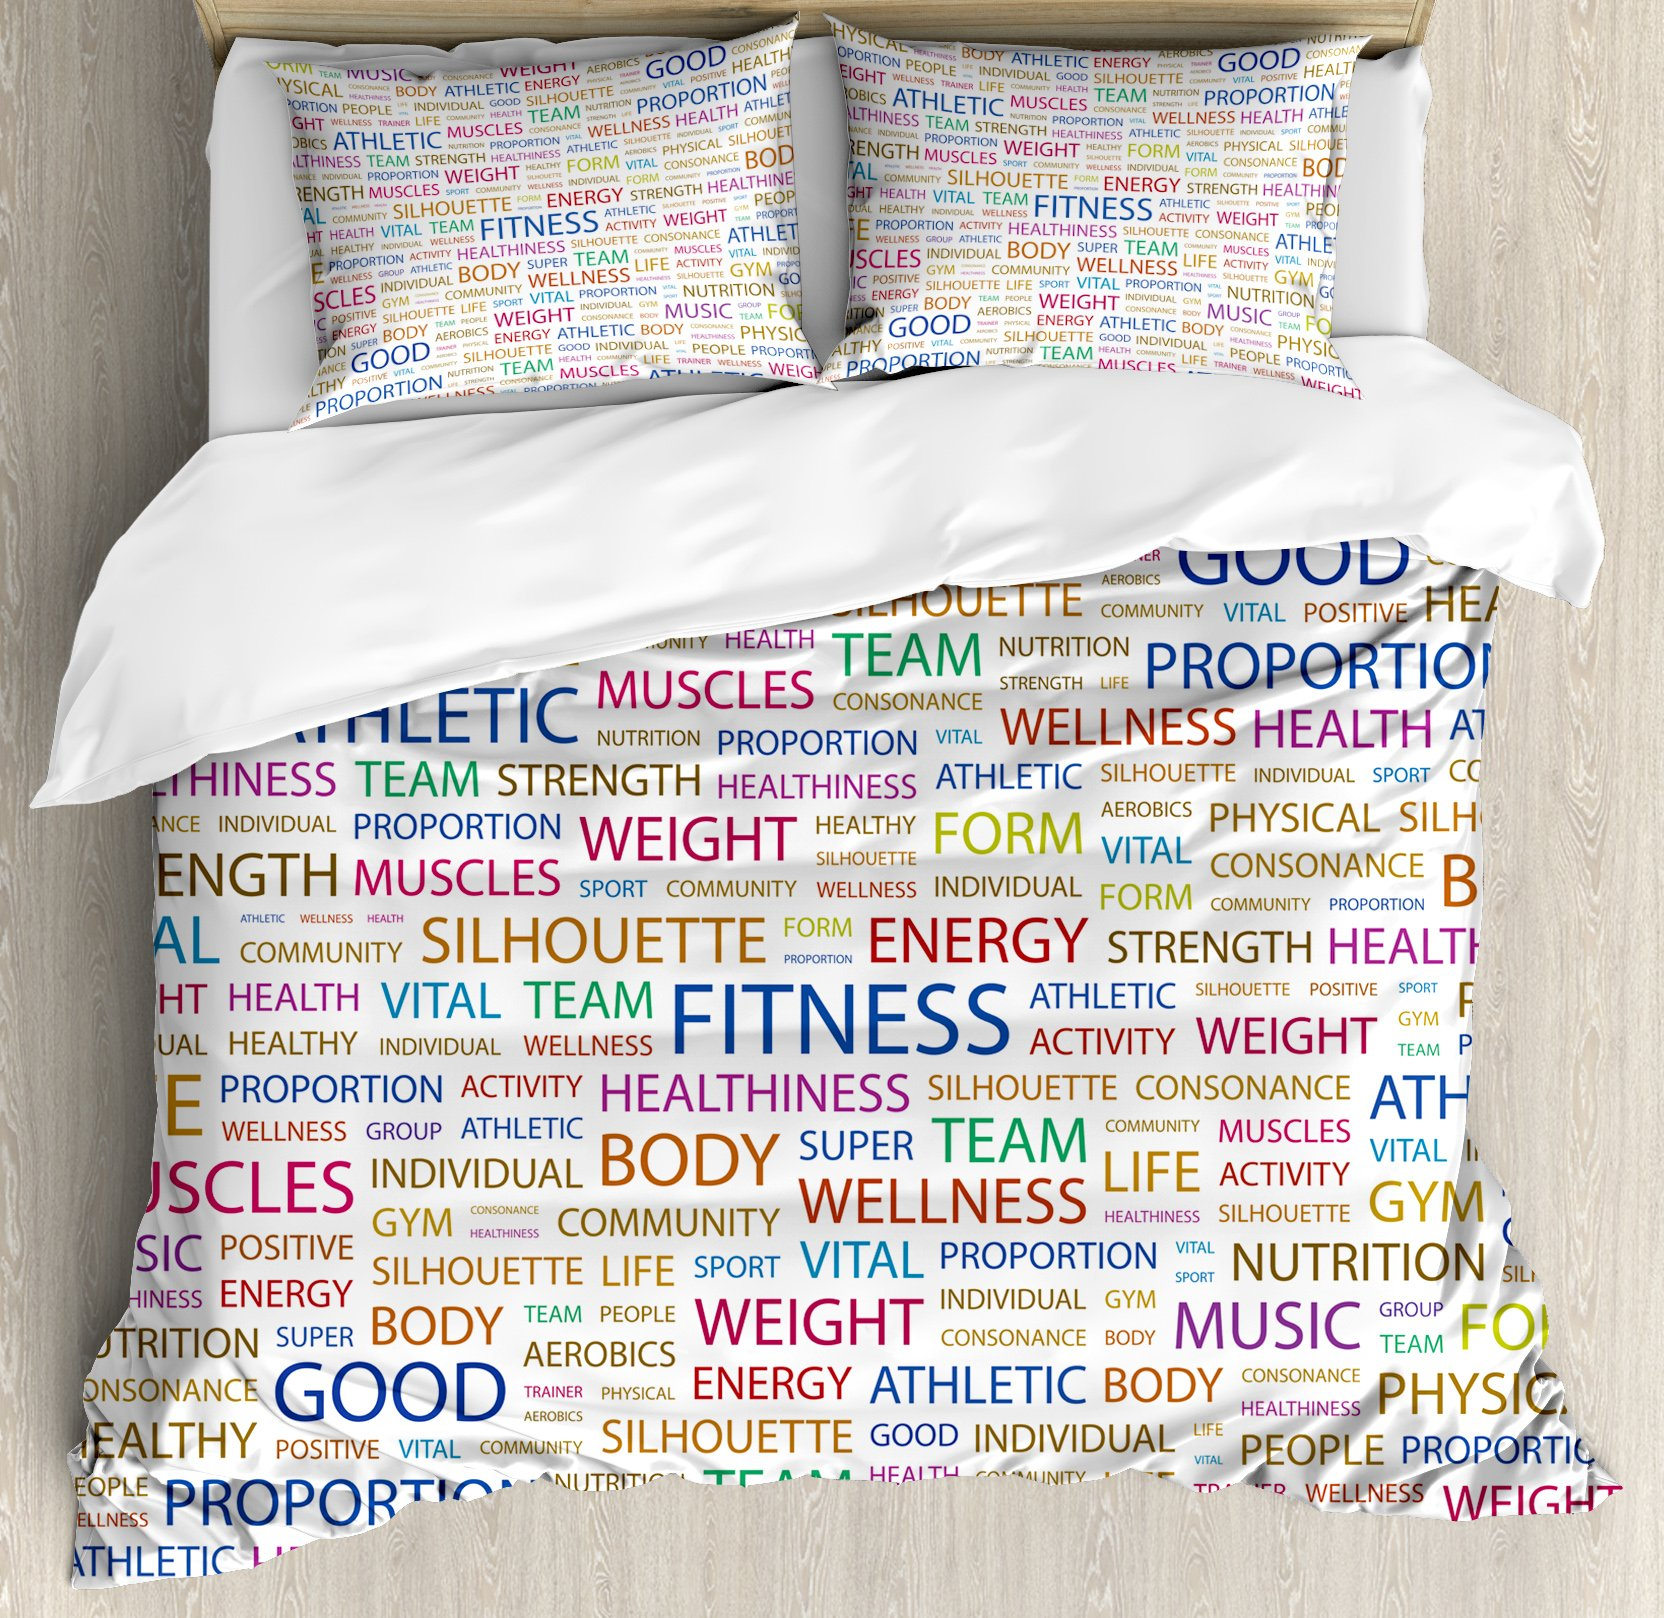 Fitness Queen Size Duvet Cover Set by Ambesonne, Gymnastics Psyhical Activity Lifestyle Concept Words Salubrity Wellness Health, Decorative 3 Piece Bedding Set with 2 Pillow Shams, Multicolor by Ambesonne (Image #1)